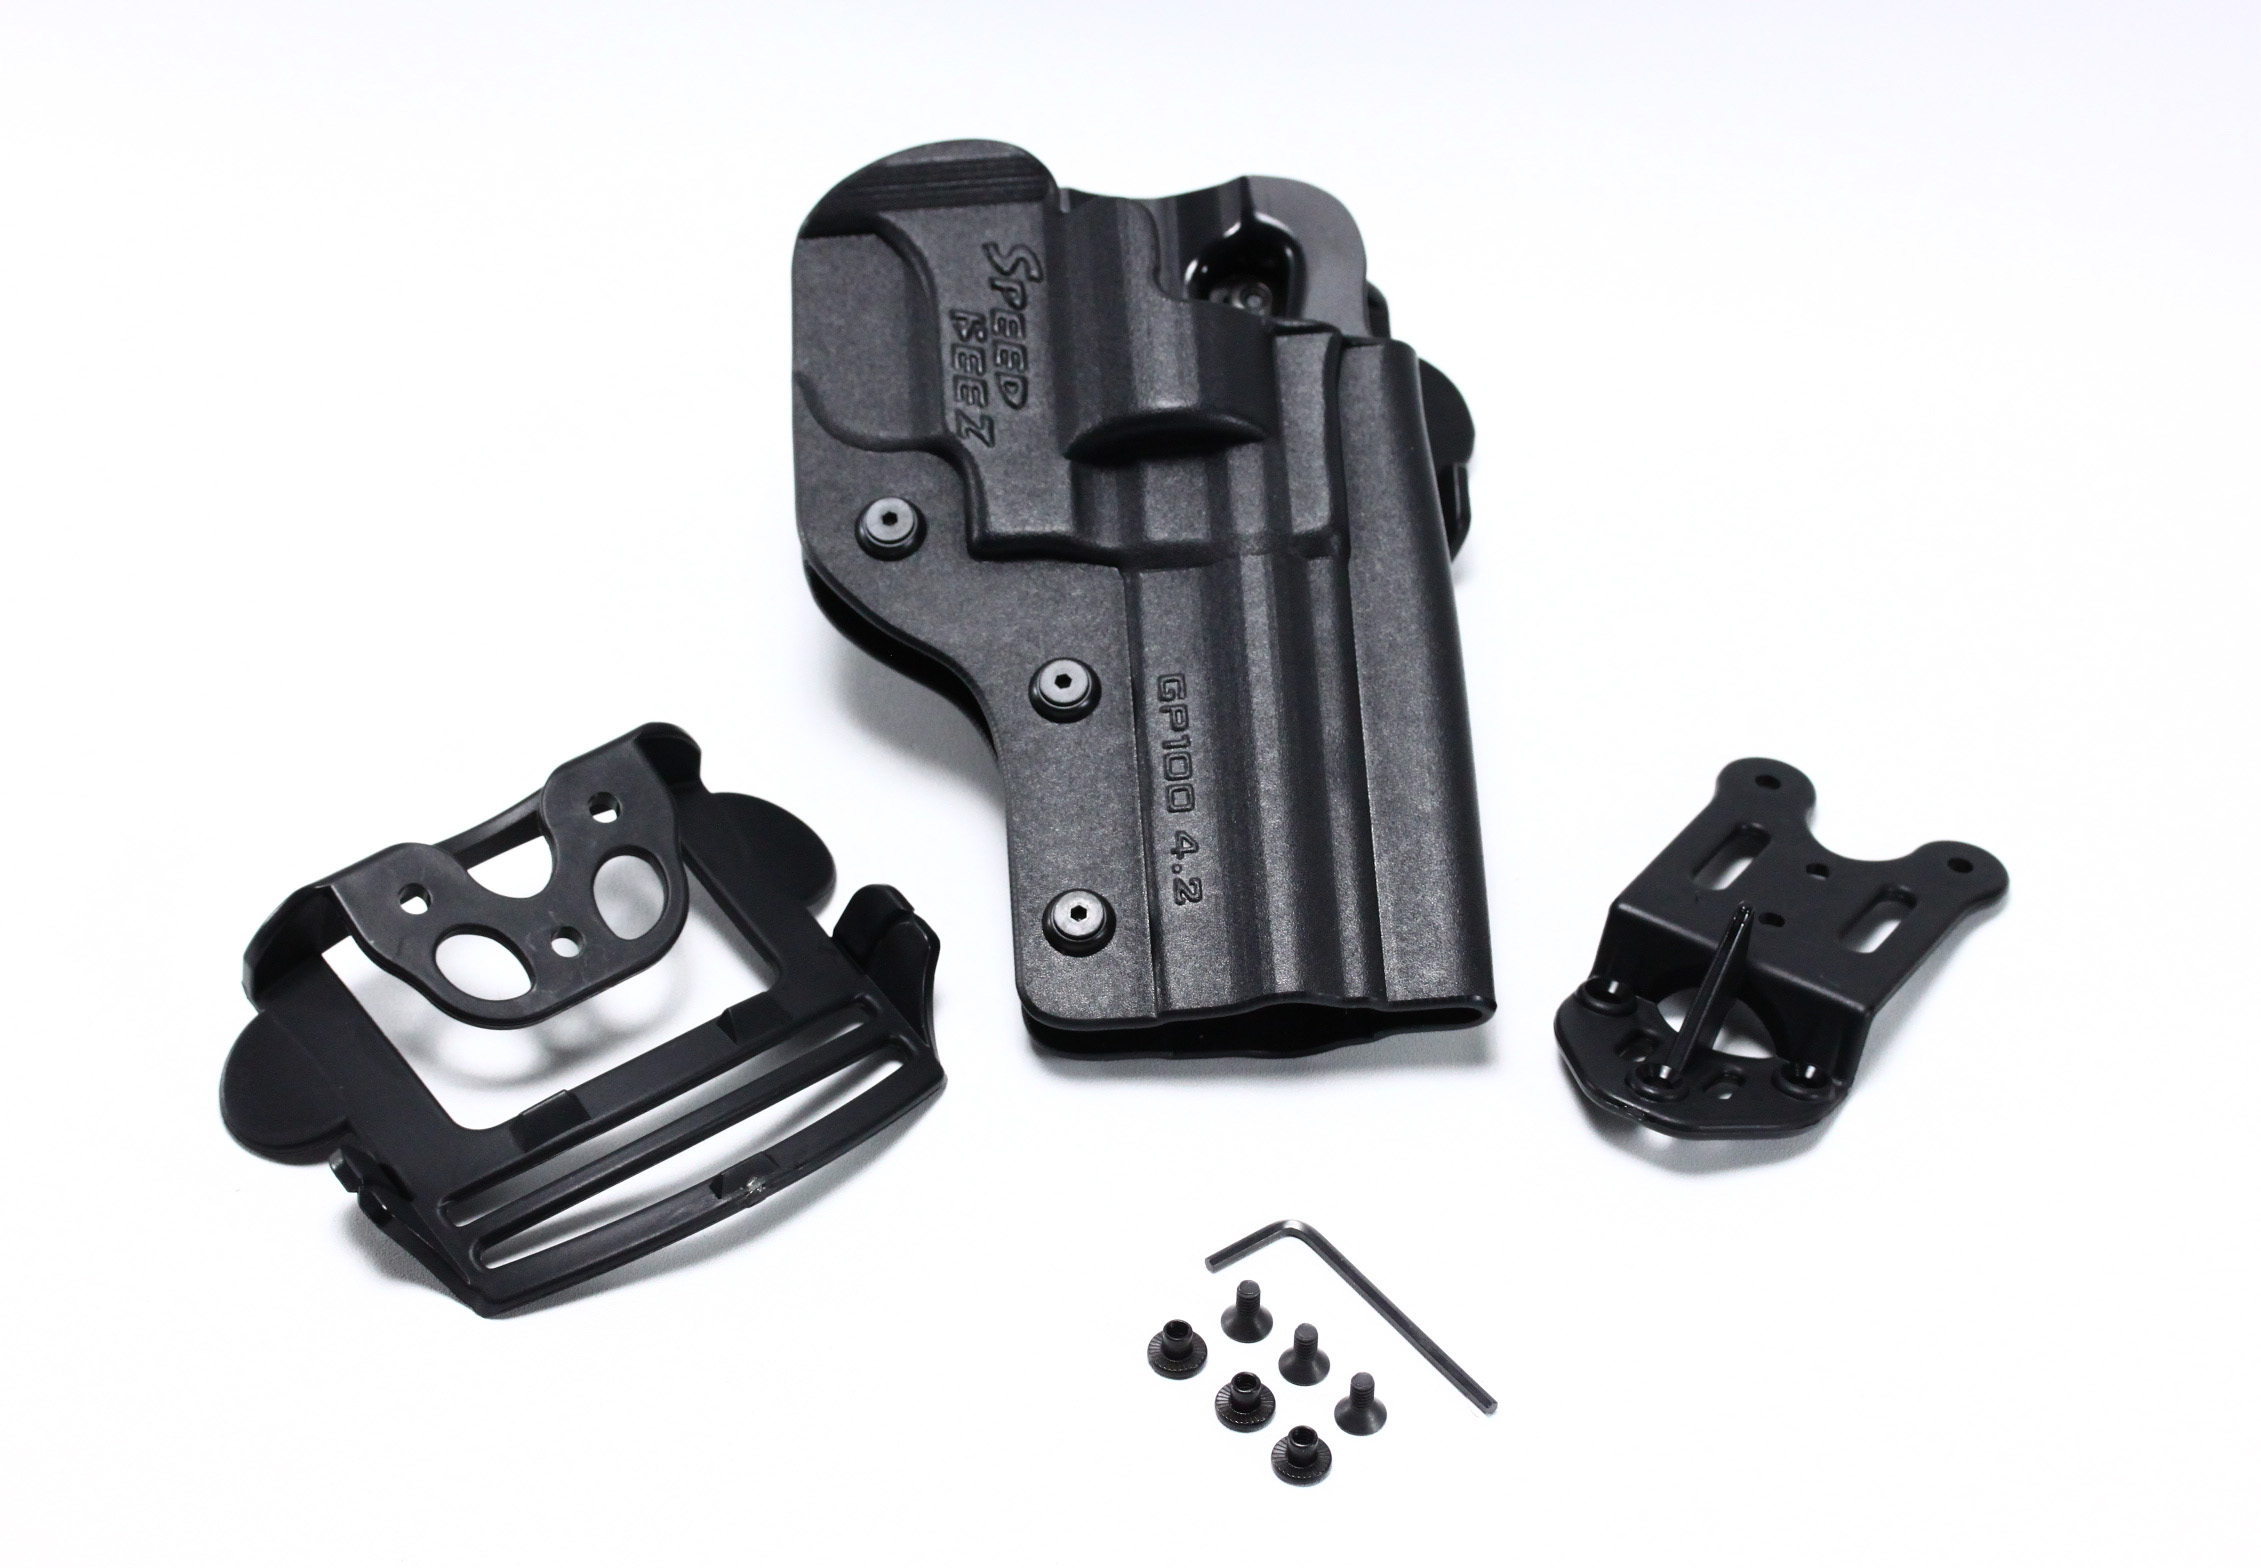 SPEED BEEZ® Ruger GP-100 4 2 Inch Tactical Revolver Holster Outside the  Waist Band OWB (Fits any Ruger GP100 up to 4 2 Inch Barrel)